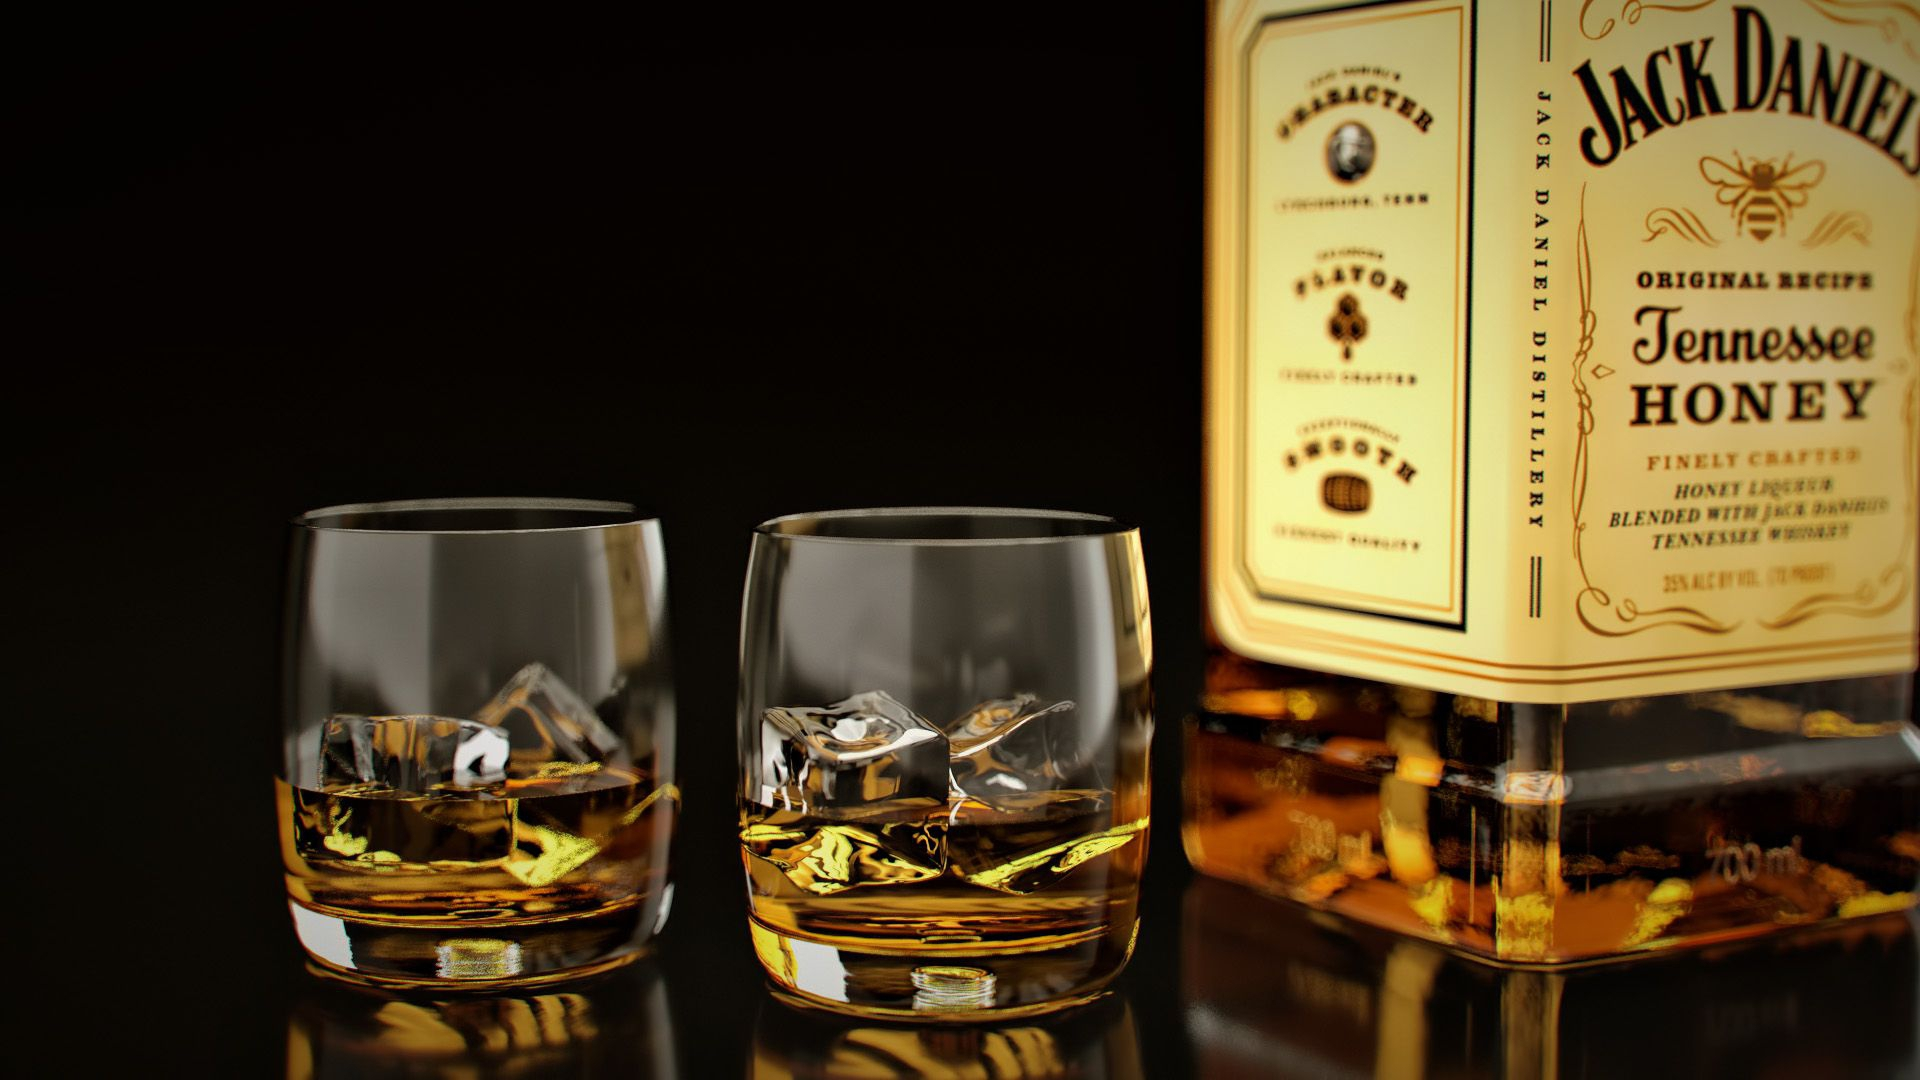 Jack daniels wallpapers images photos pictures backgrounds for Photos jack daniels